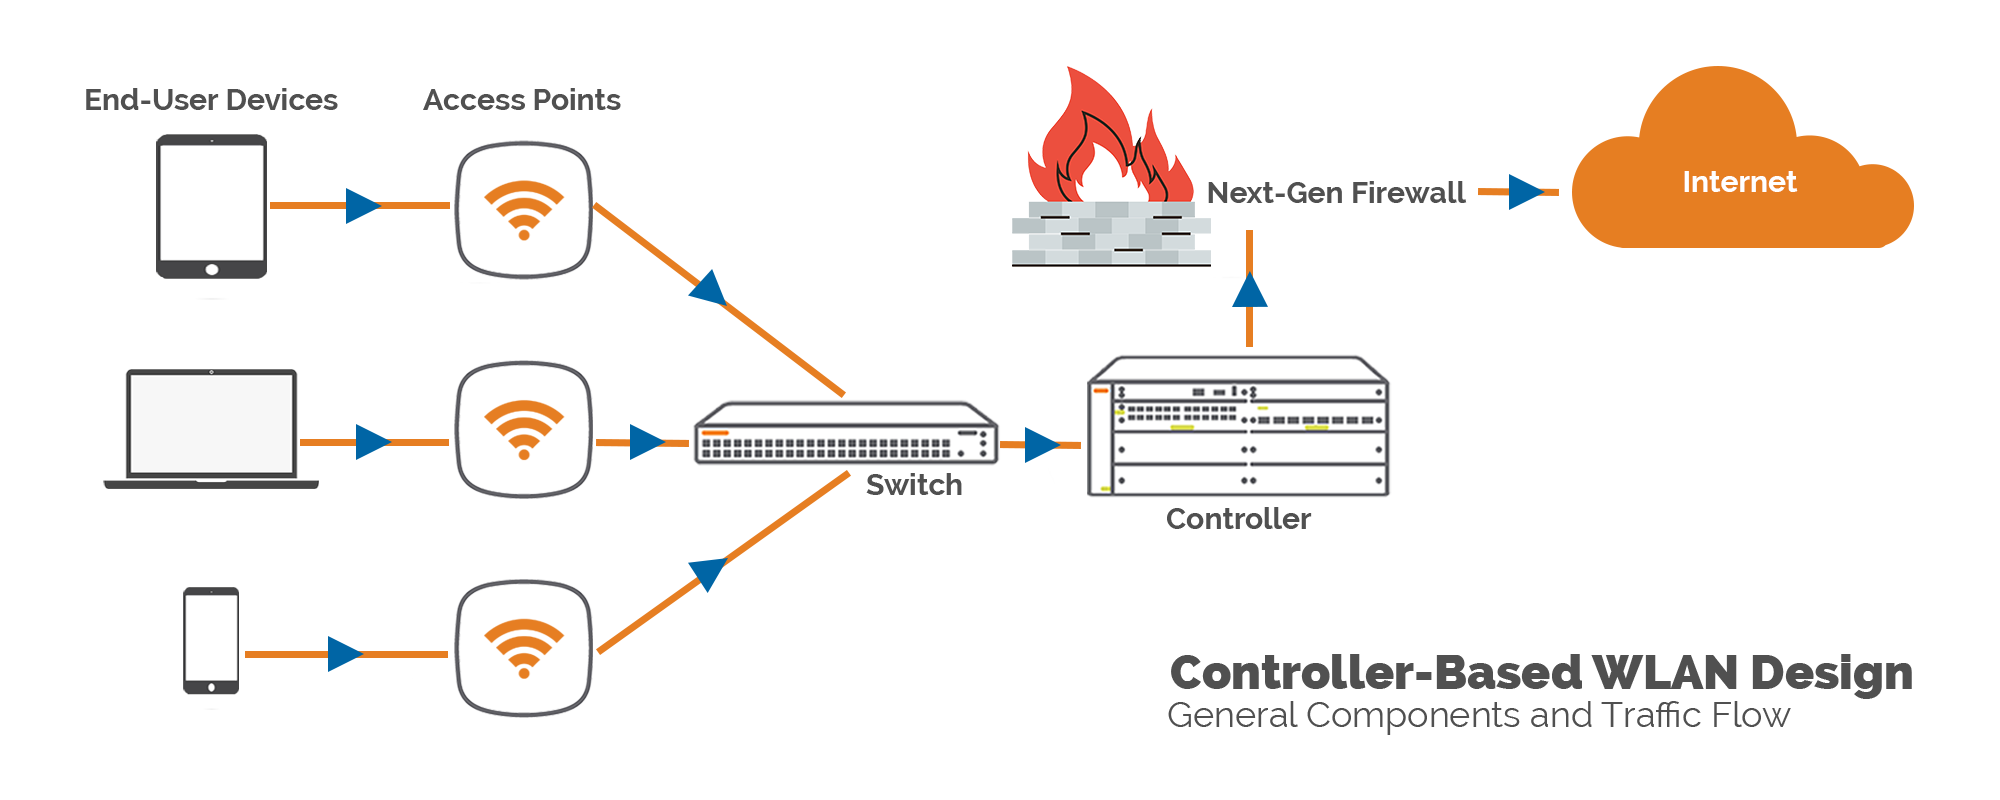 WiFi Controller-based-WLAN-design flow of traffic infographic.png